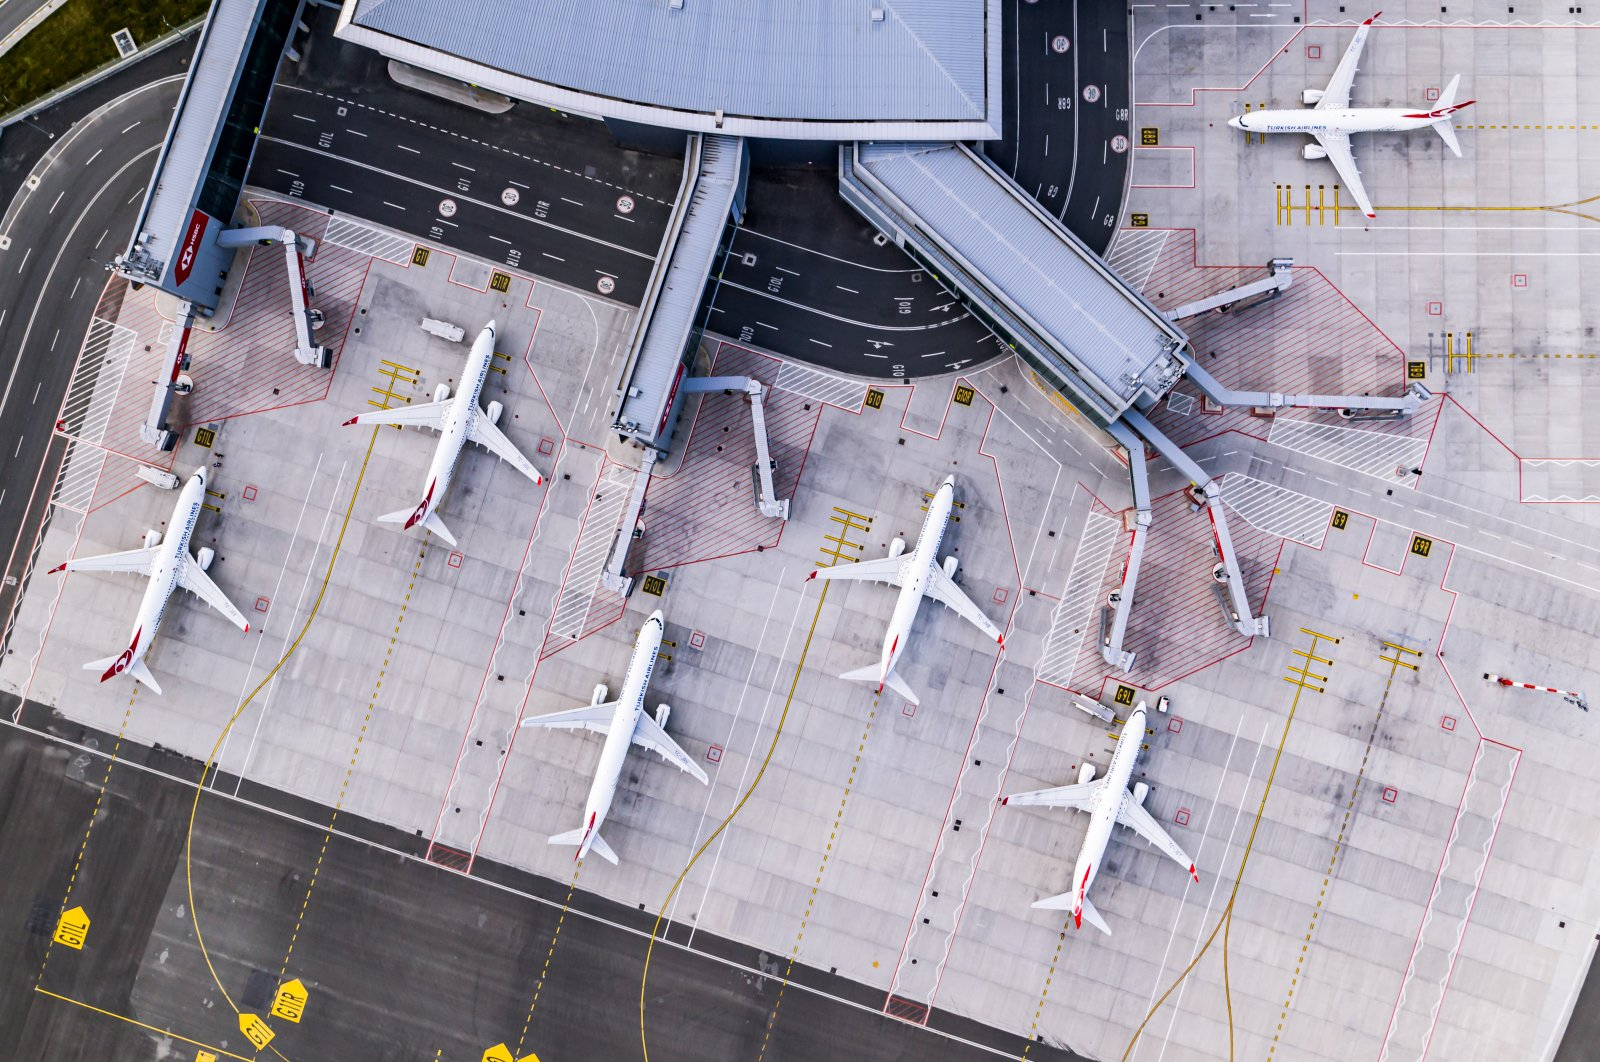 Planes sit on the tarmac at Istanbul Airport, Turkey. (Photo courtesy of IGA)